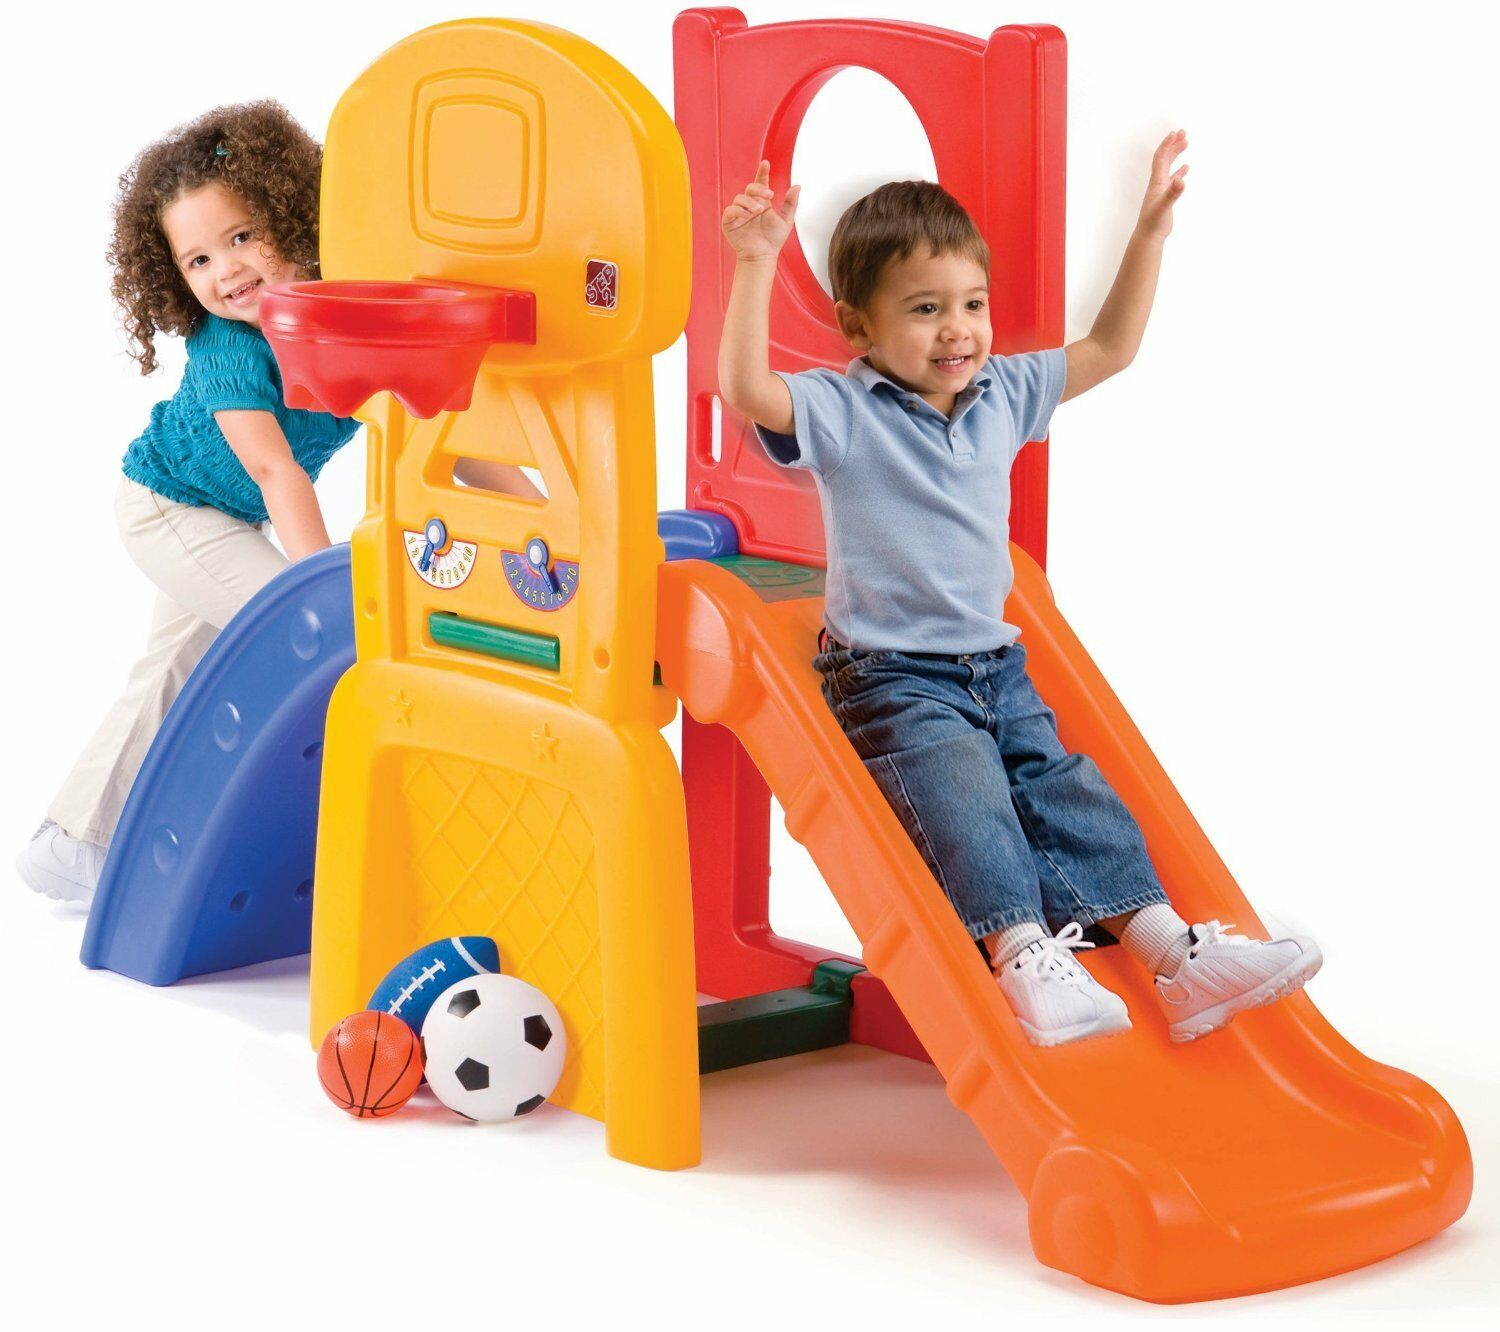 Little Tykes Climber Outdoor Indoor Slide Play Kids Toddler Set